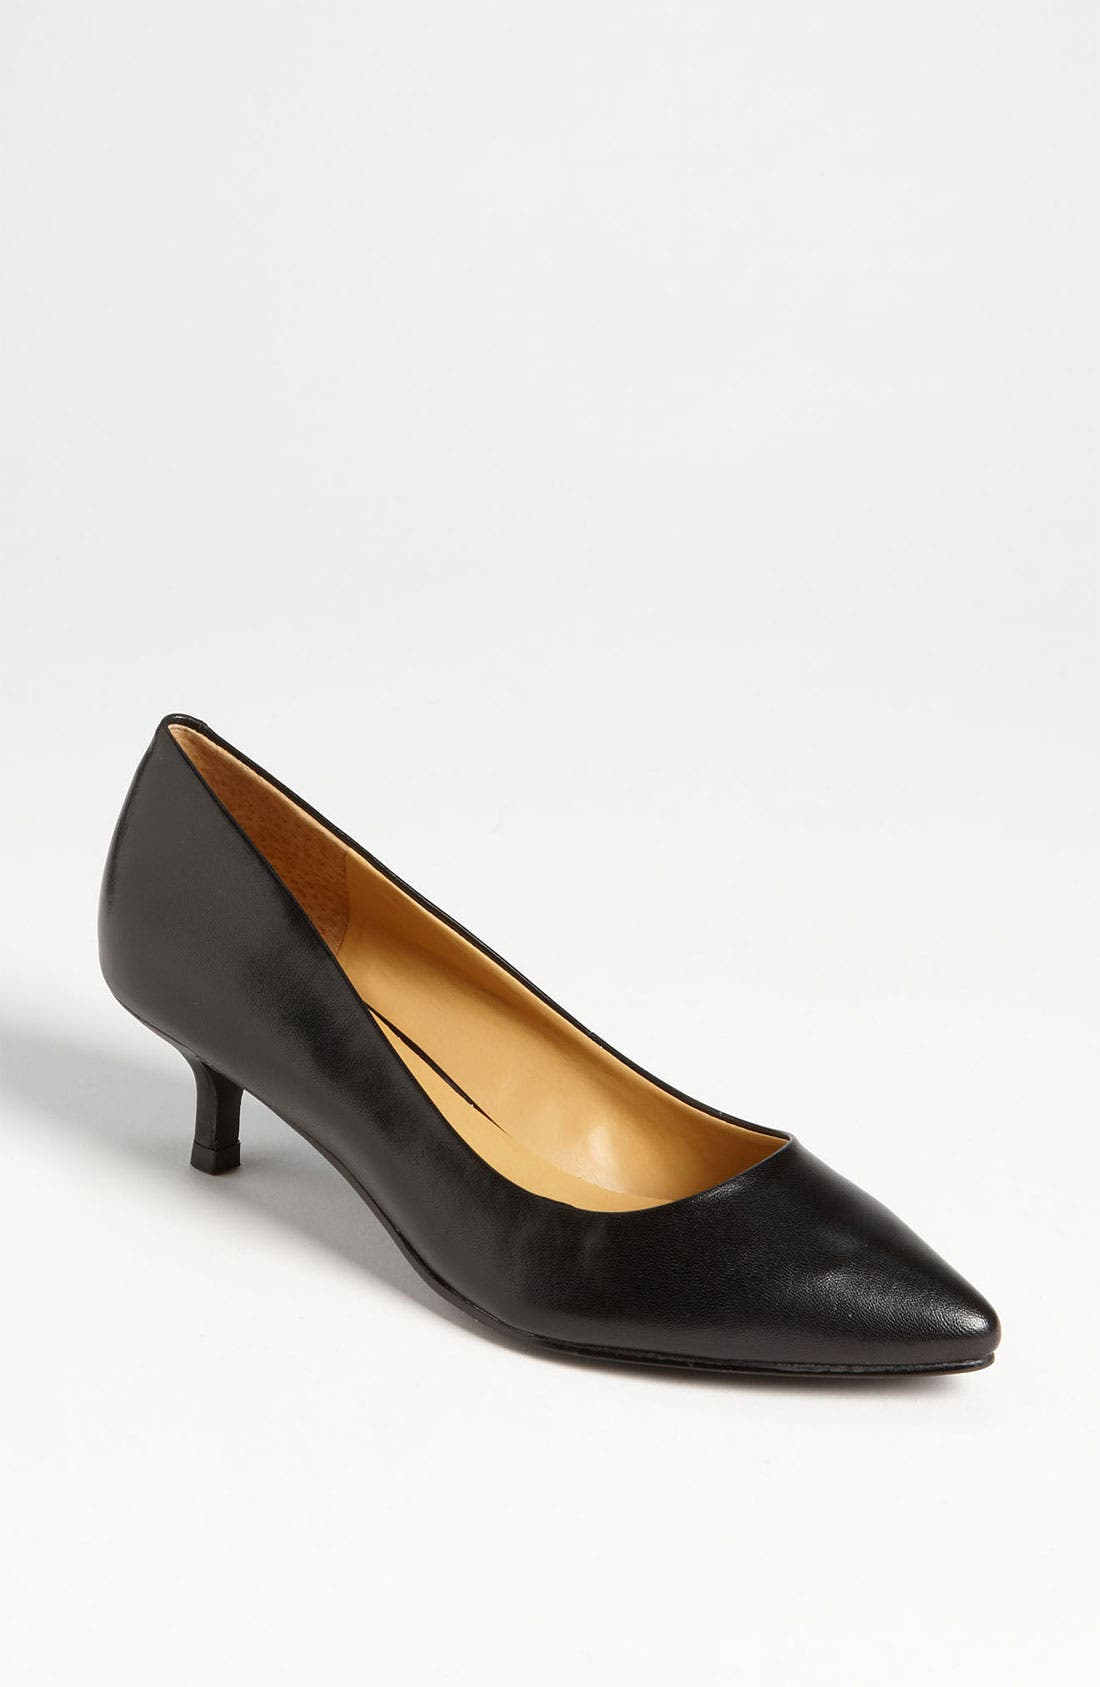 Alternate Image 1 Selected - Nine West 'Runit' Kitten Heel Pump